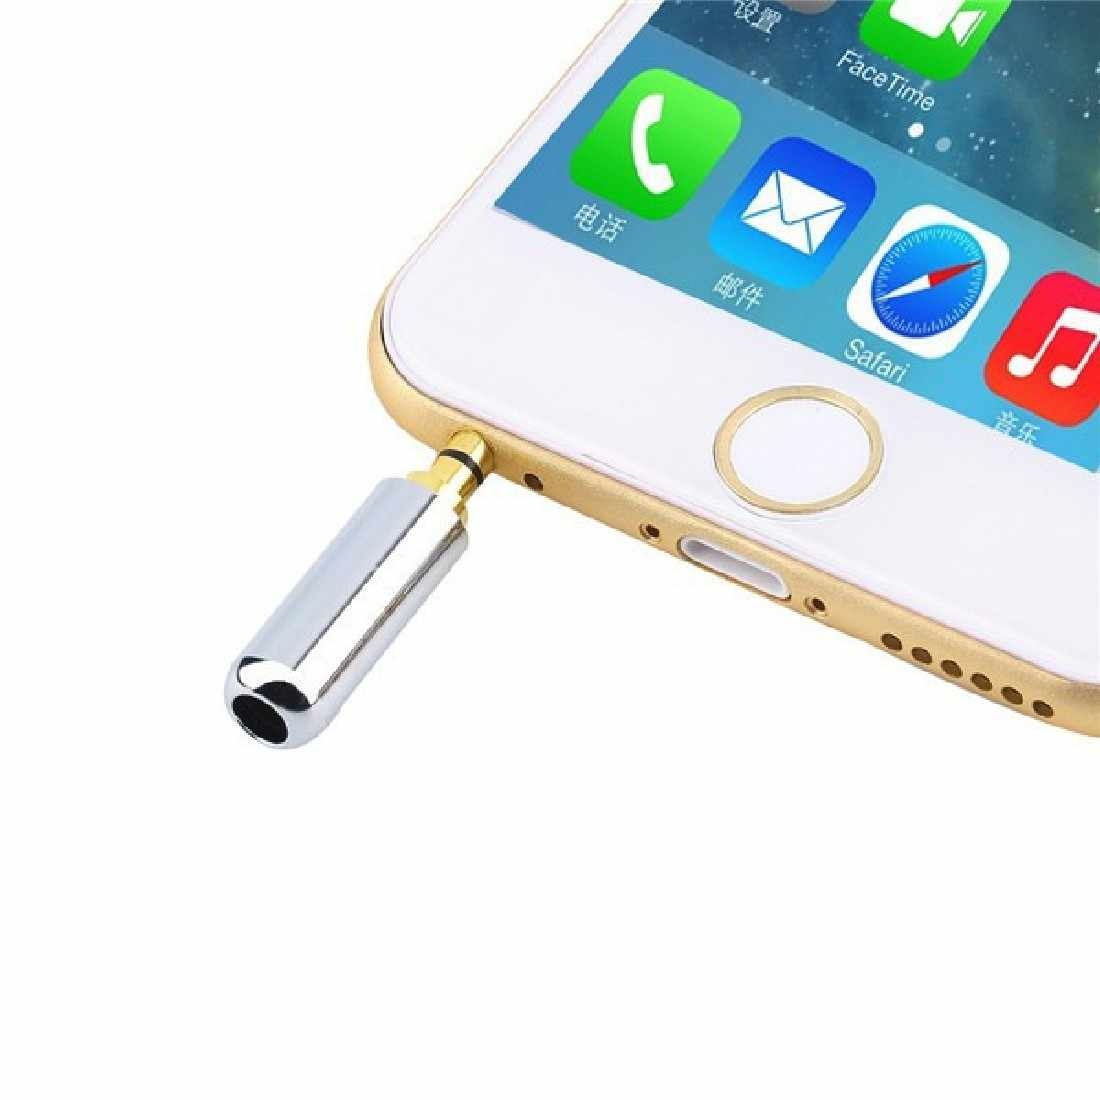 1PC 3.5 mm Plug Audio Jack 4 Pole Gold Plated Earphone Adapter Socket for DIY Stereo Headset Earphone Headphone for Repair